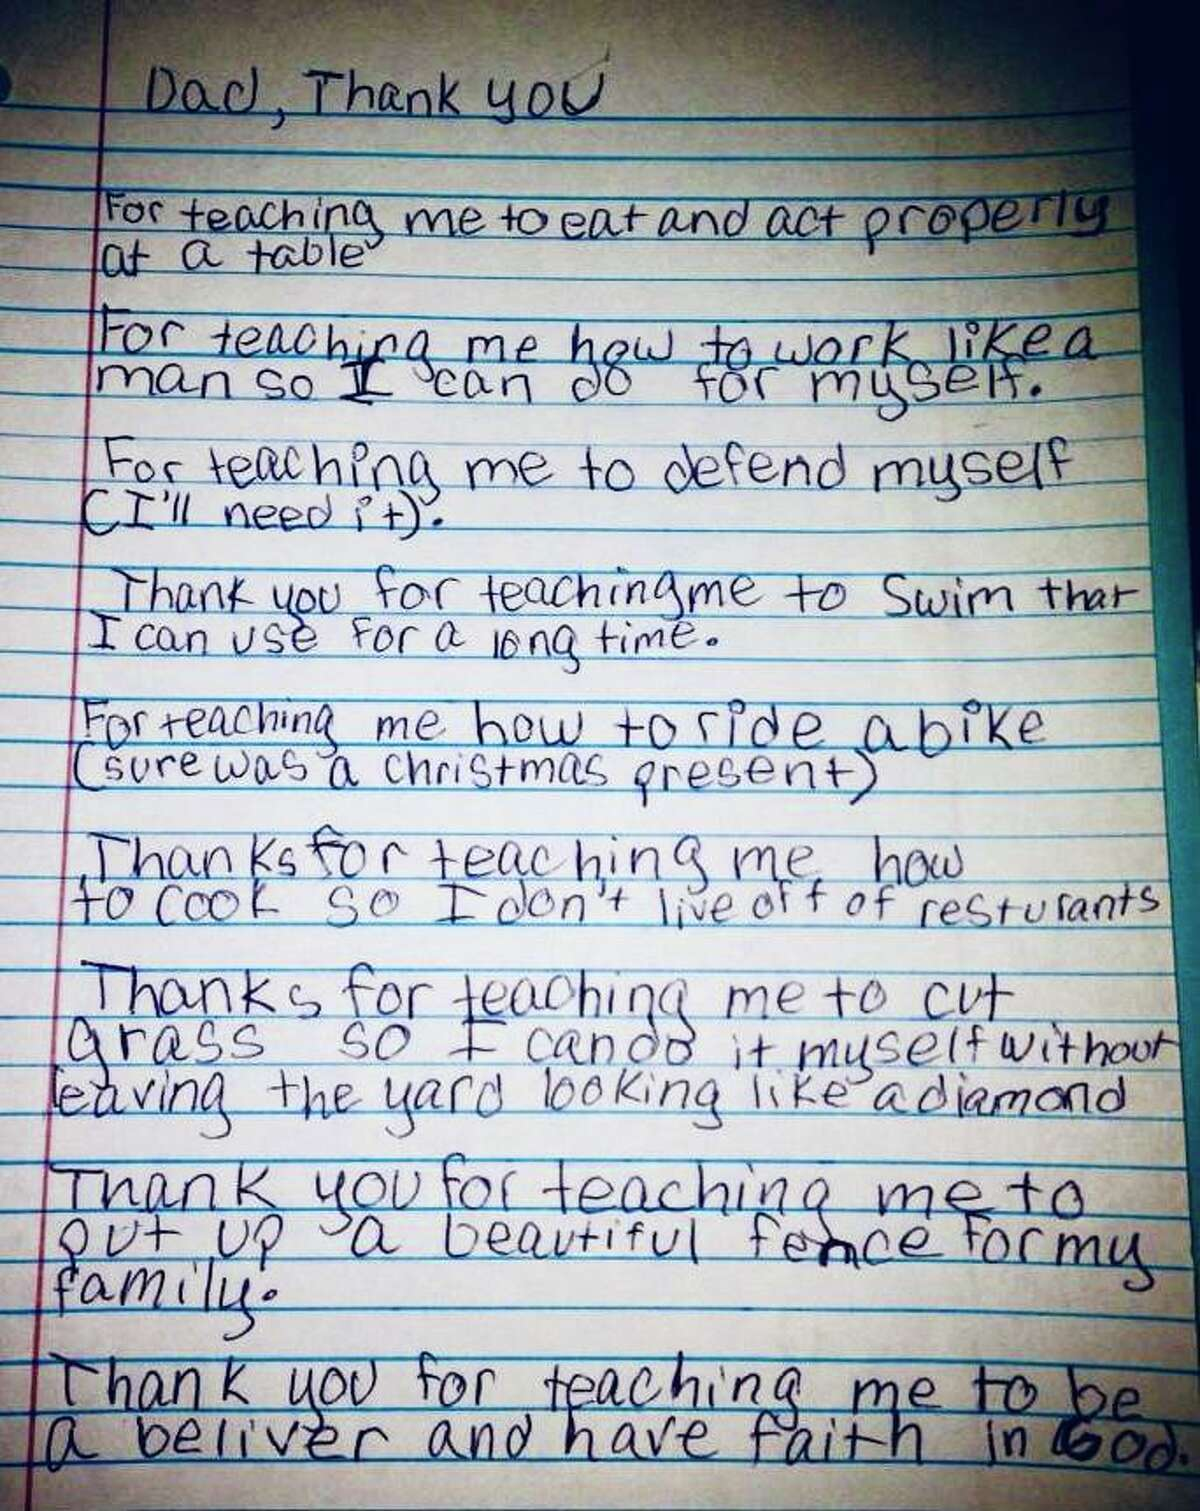 The letter my son wrote for my husband, his stepfather, for Father's Day. My son was 13 when he wrote it.